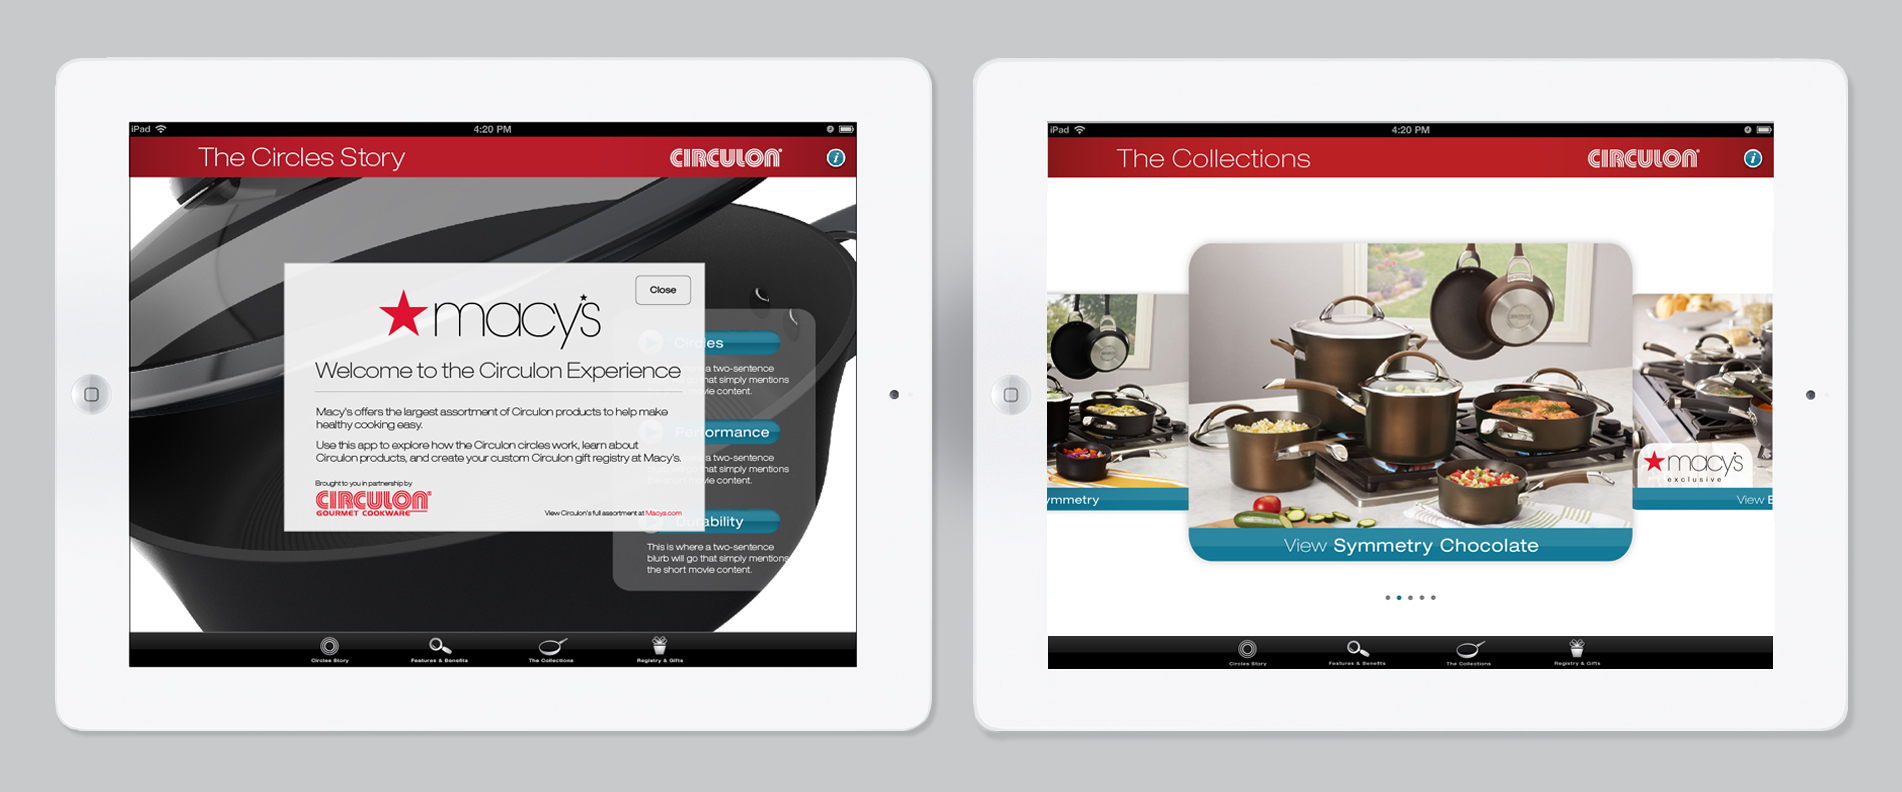 Circulon Product iPad Application